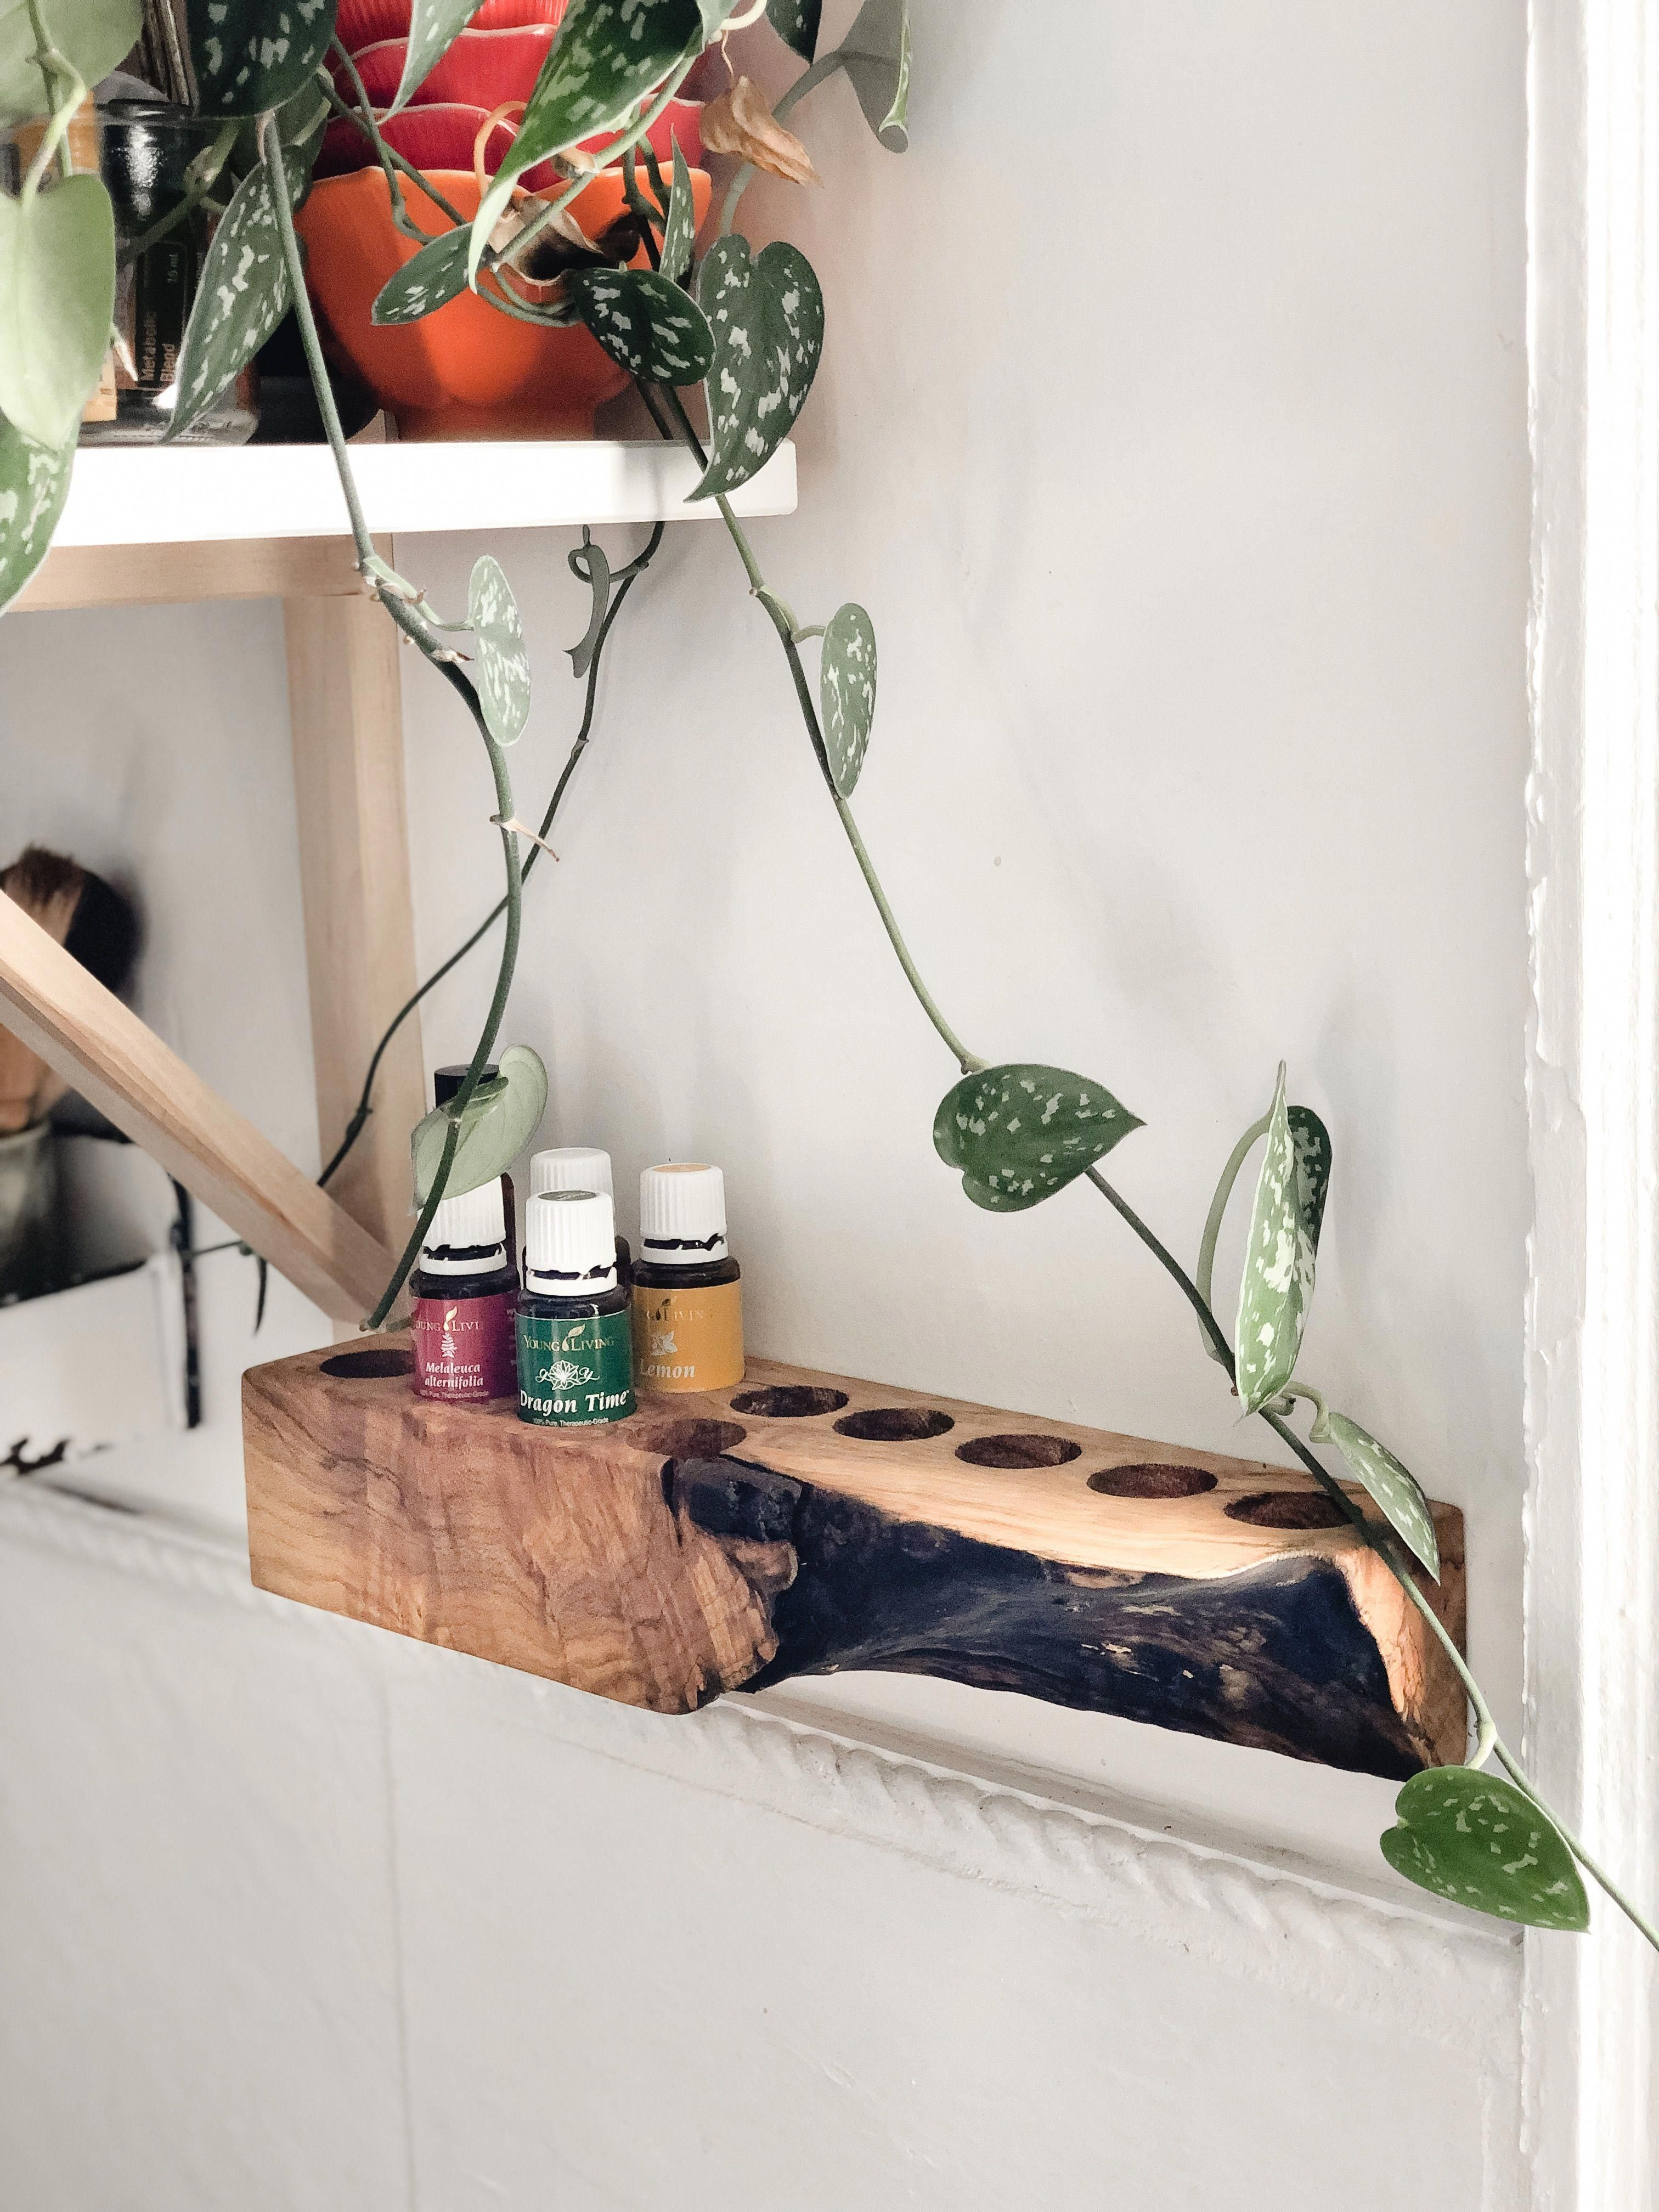 Necessary oils and an aromatherapy practice can benefit